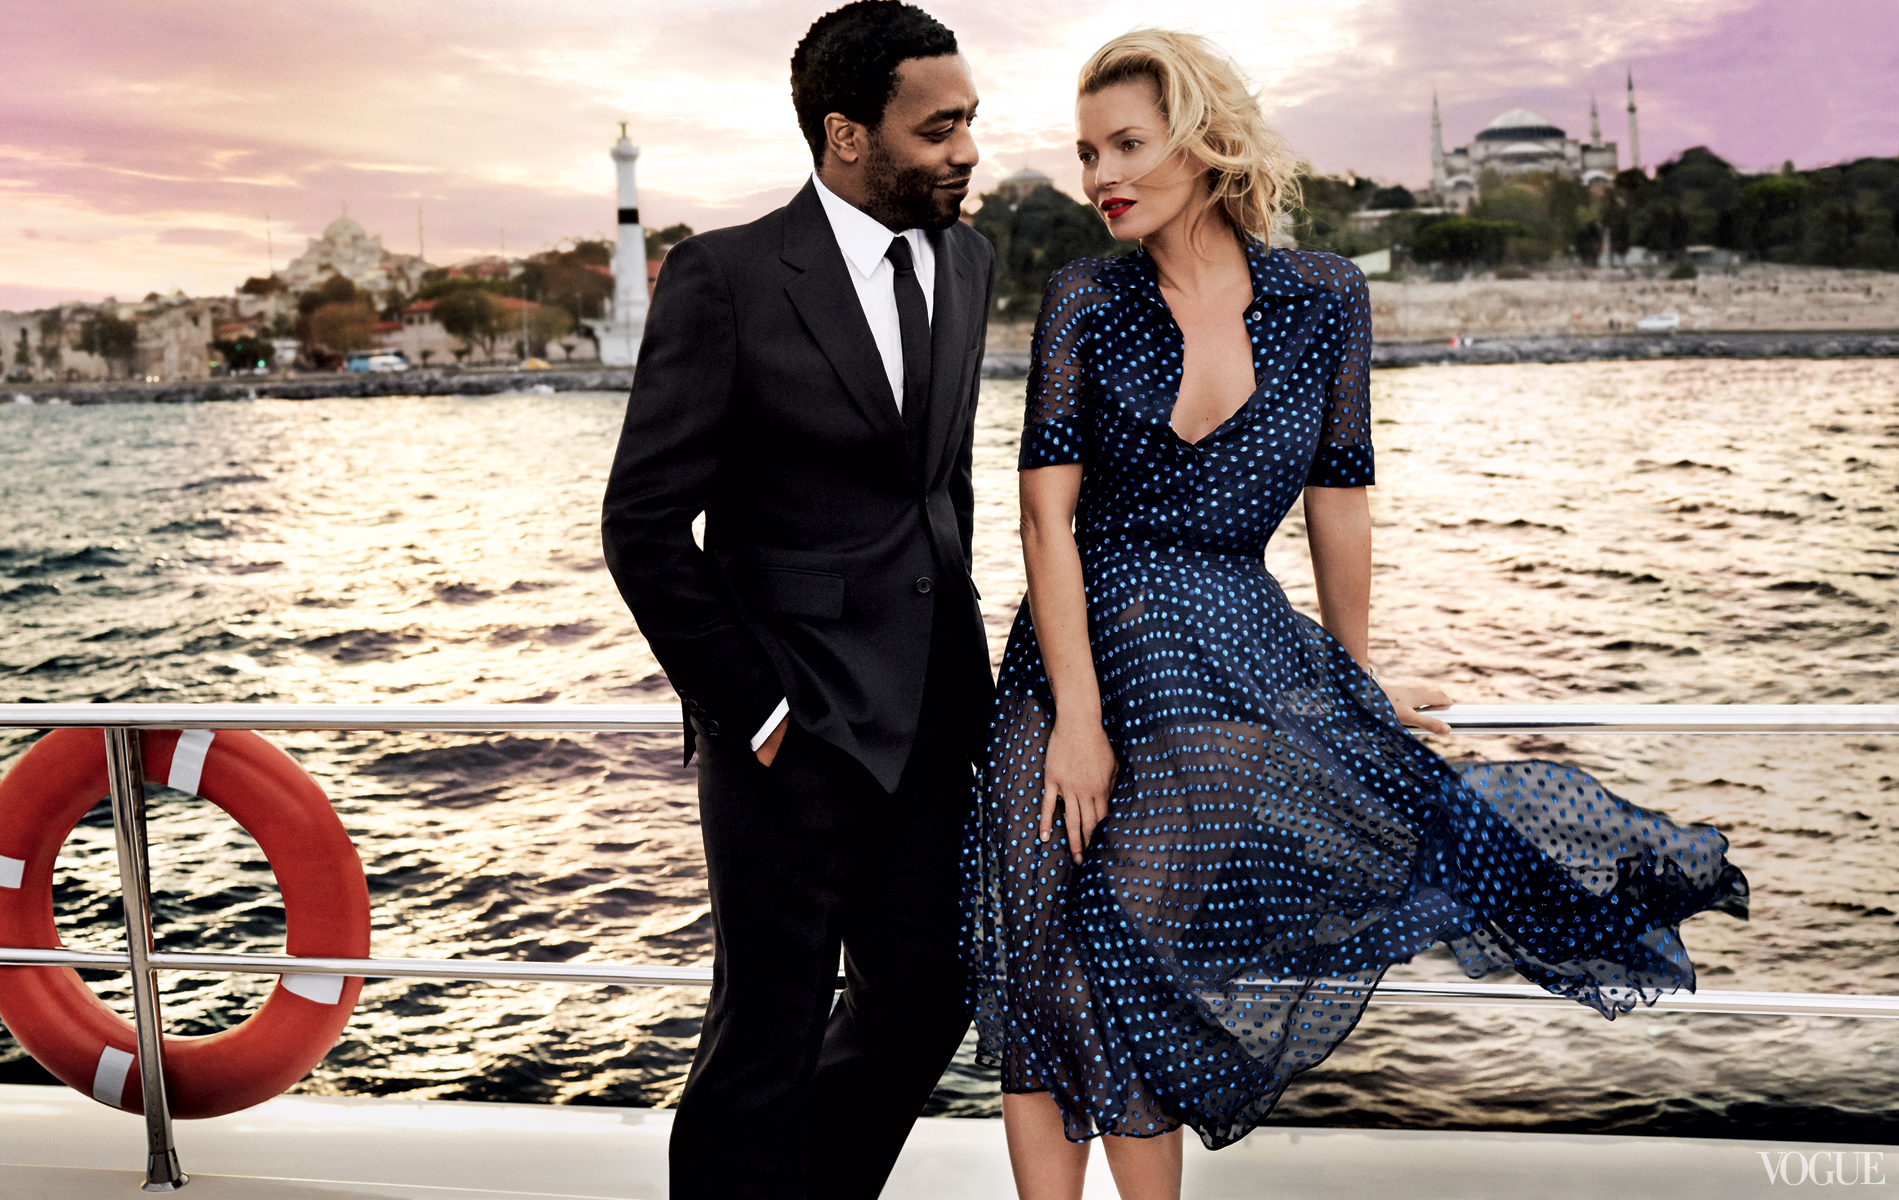 Vogue December 2013  Kate Moss & Chiwitel Ejiofor  Photographed by Mario Testino  Styled by Tonne Goodman